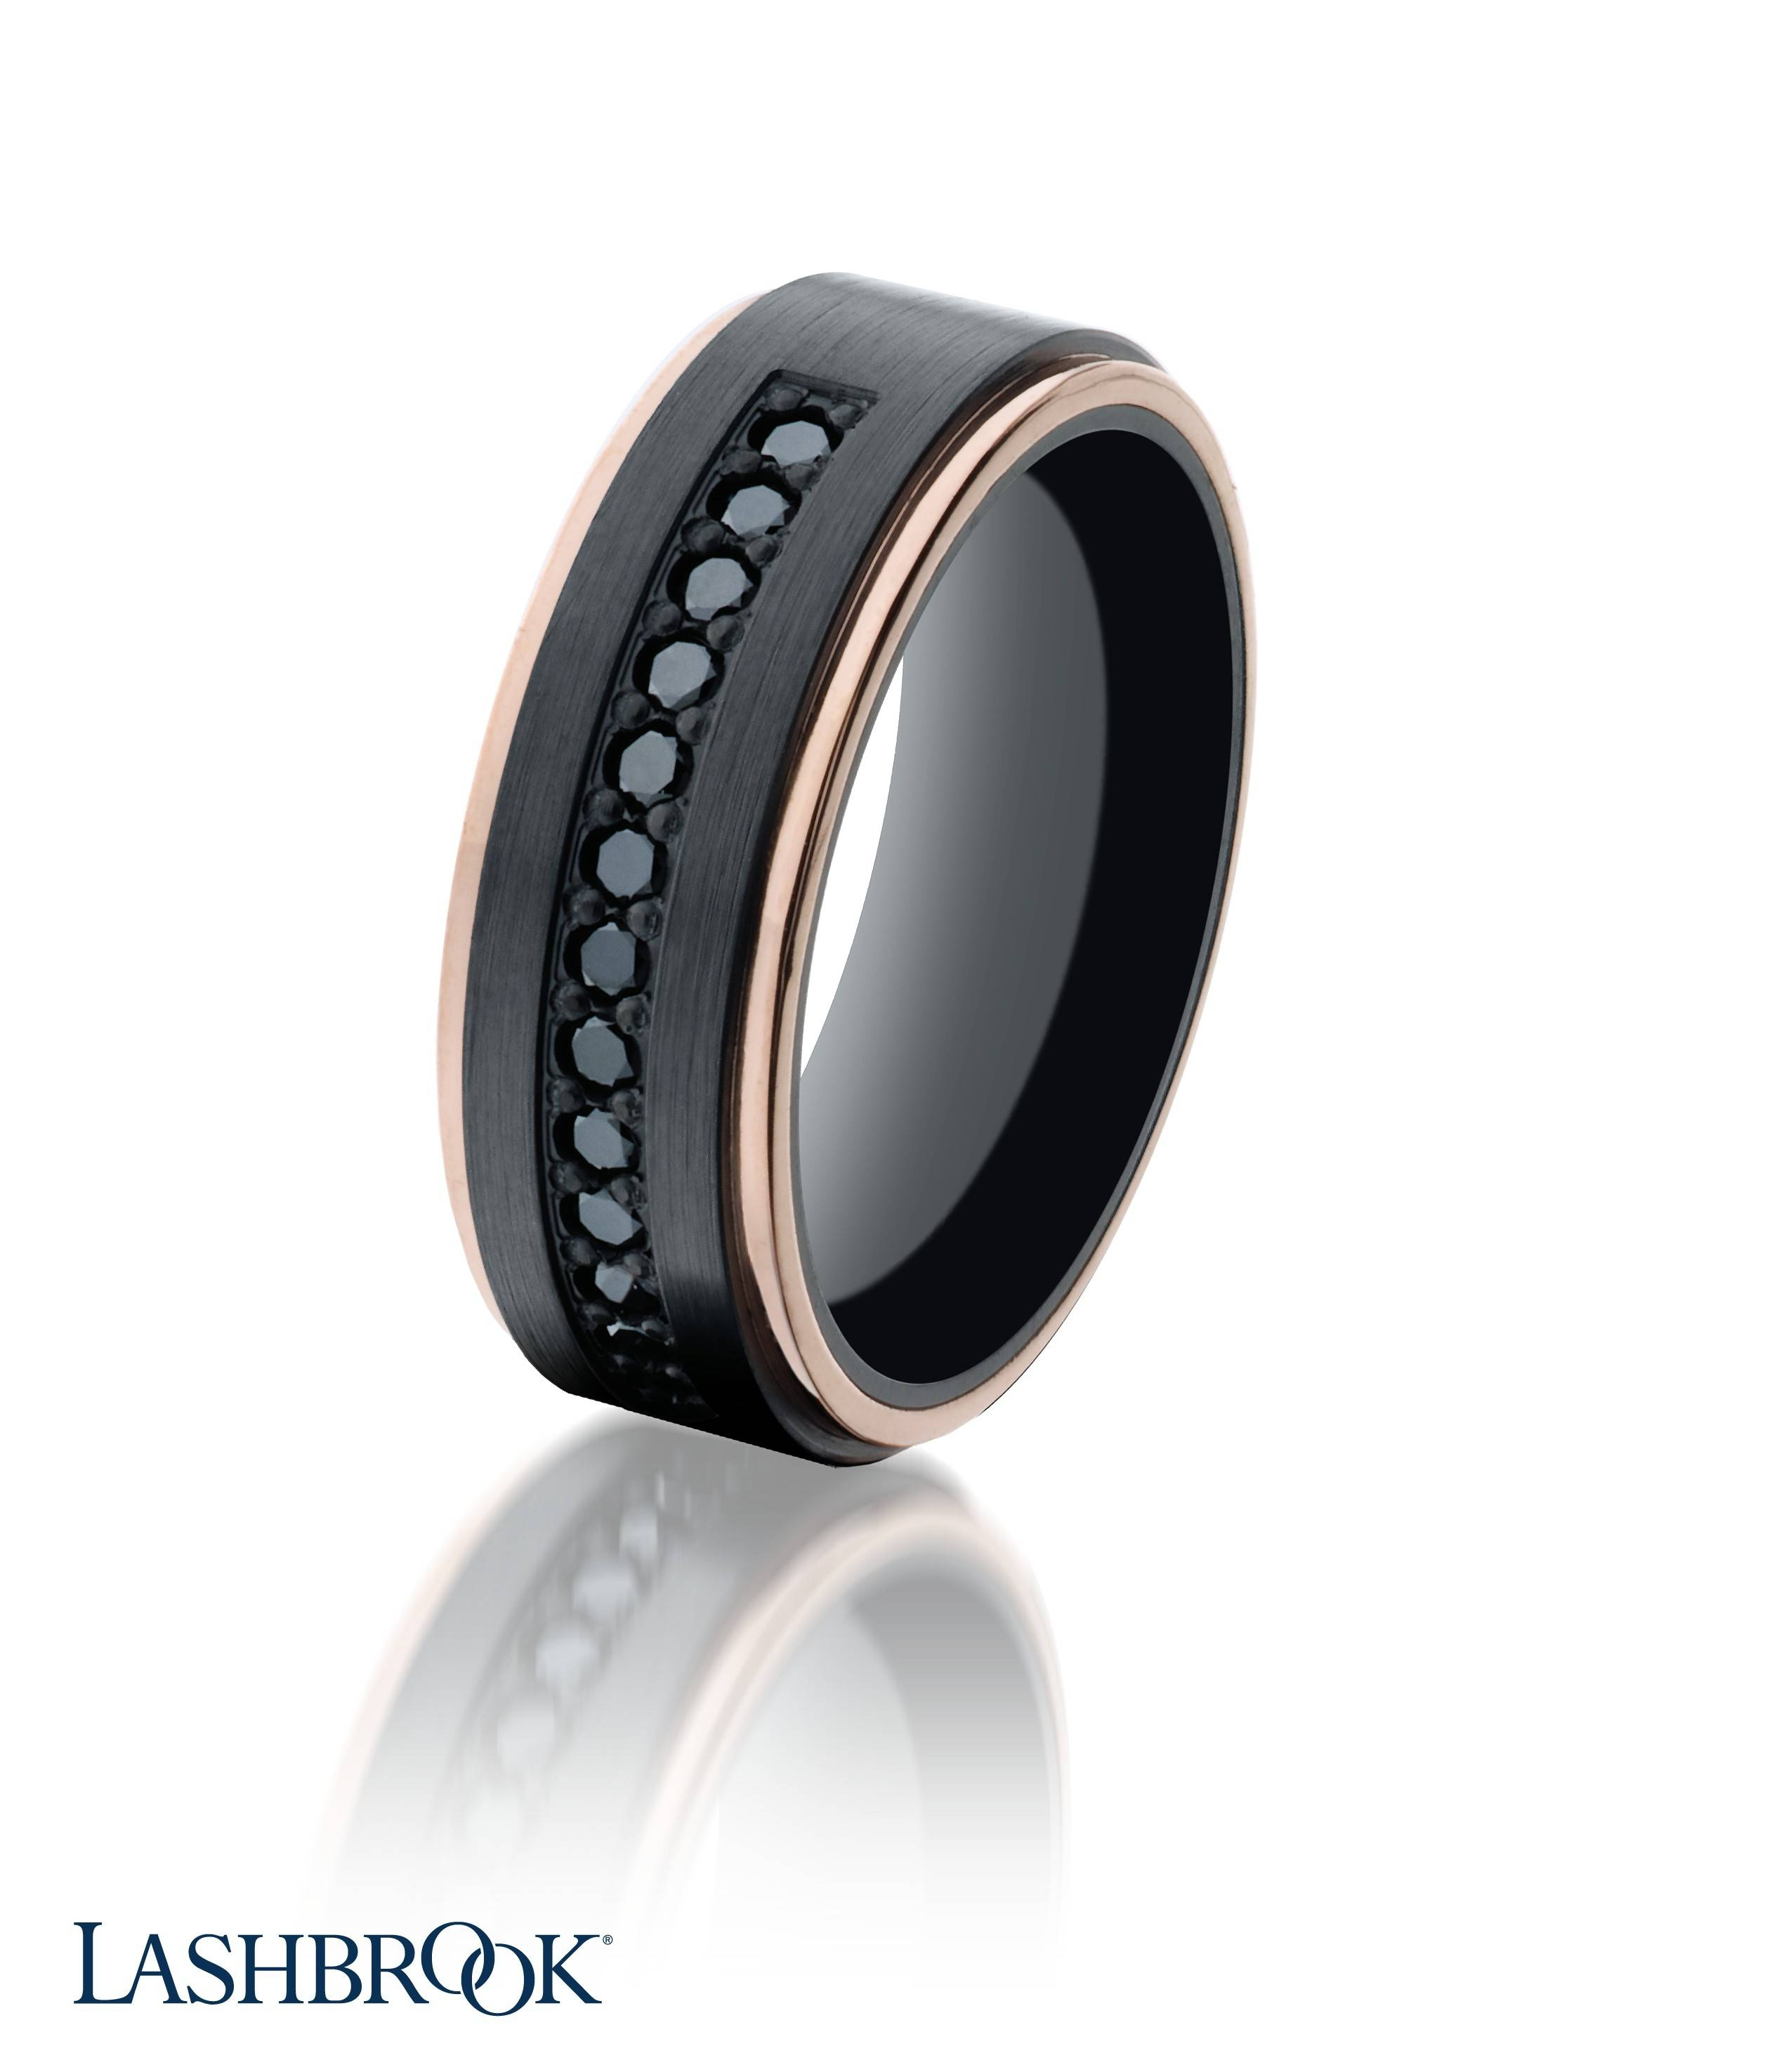 Mens Black Onyx Wedding Rings Best Of Mens 9Mm Wedding Bands For Black Onyx Wedding Bands (View 6 of 15)